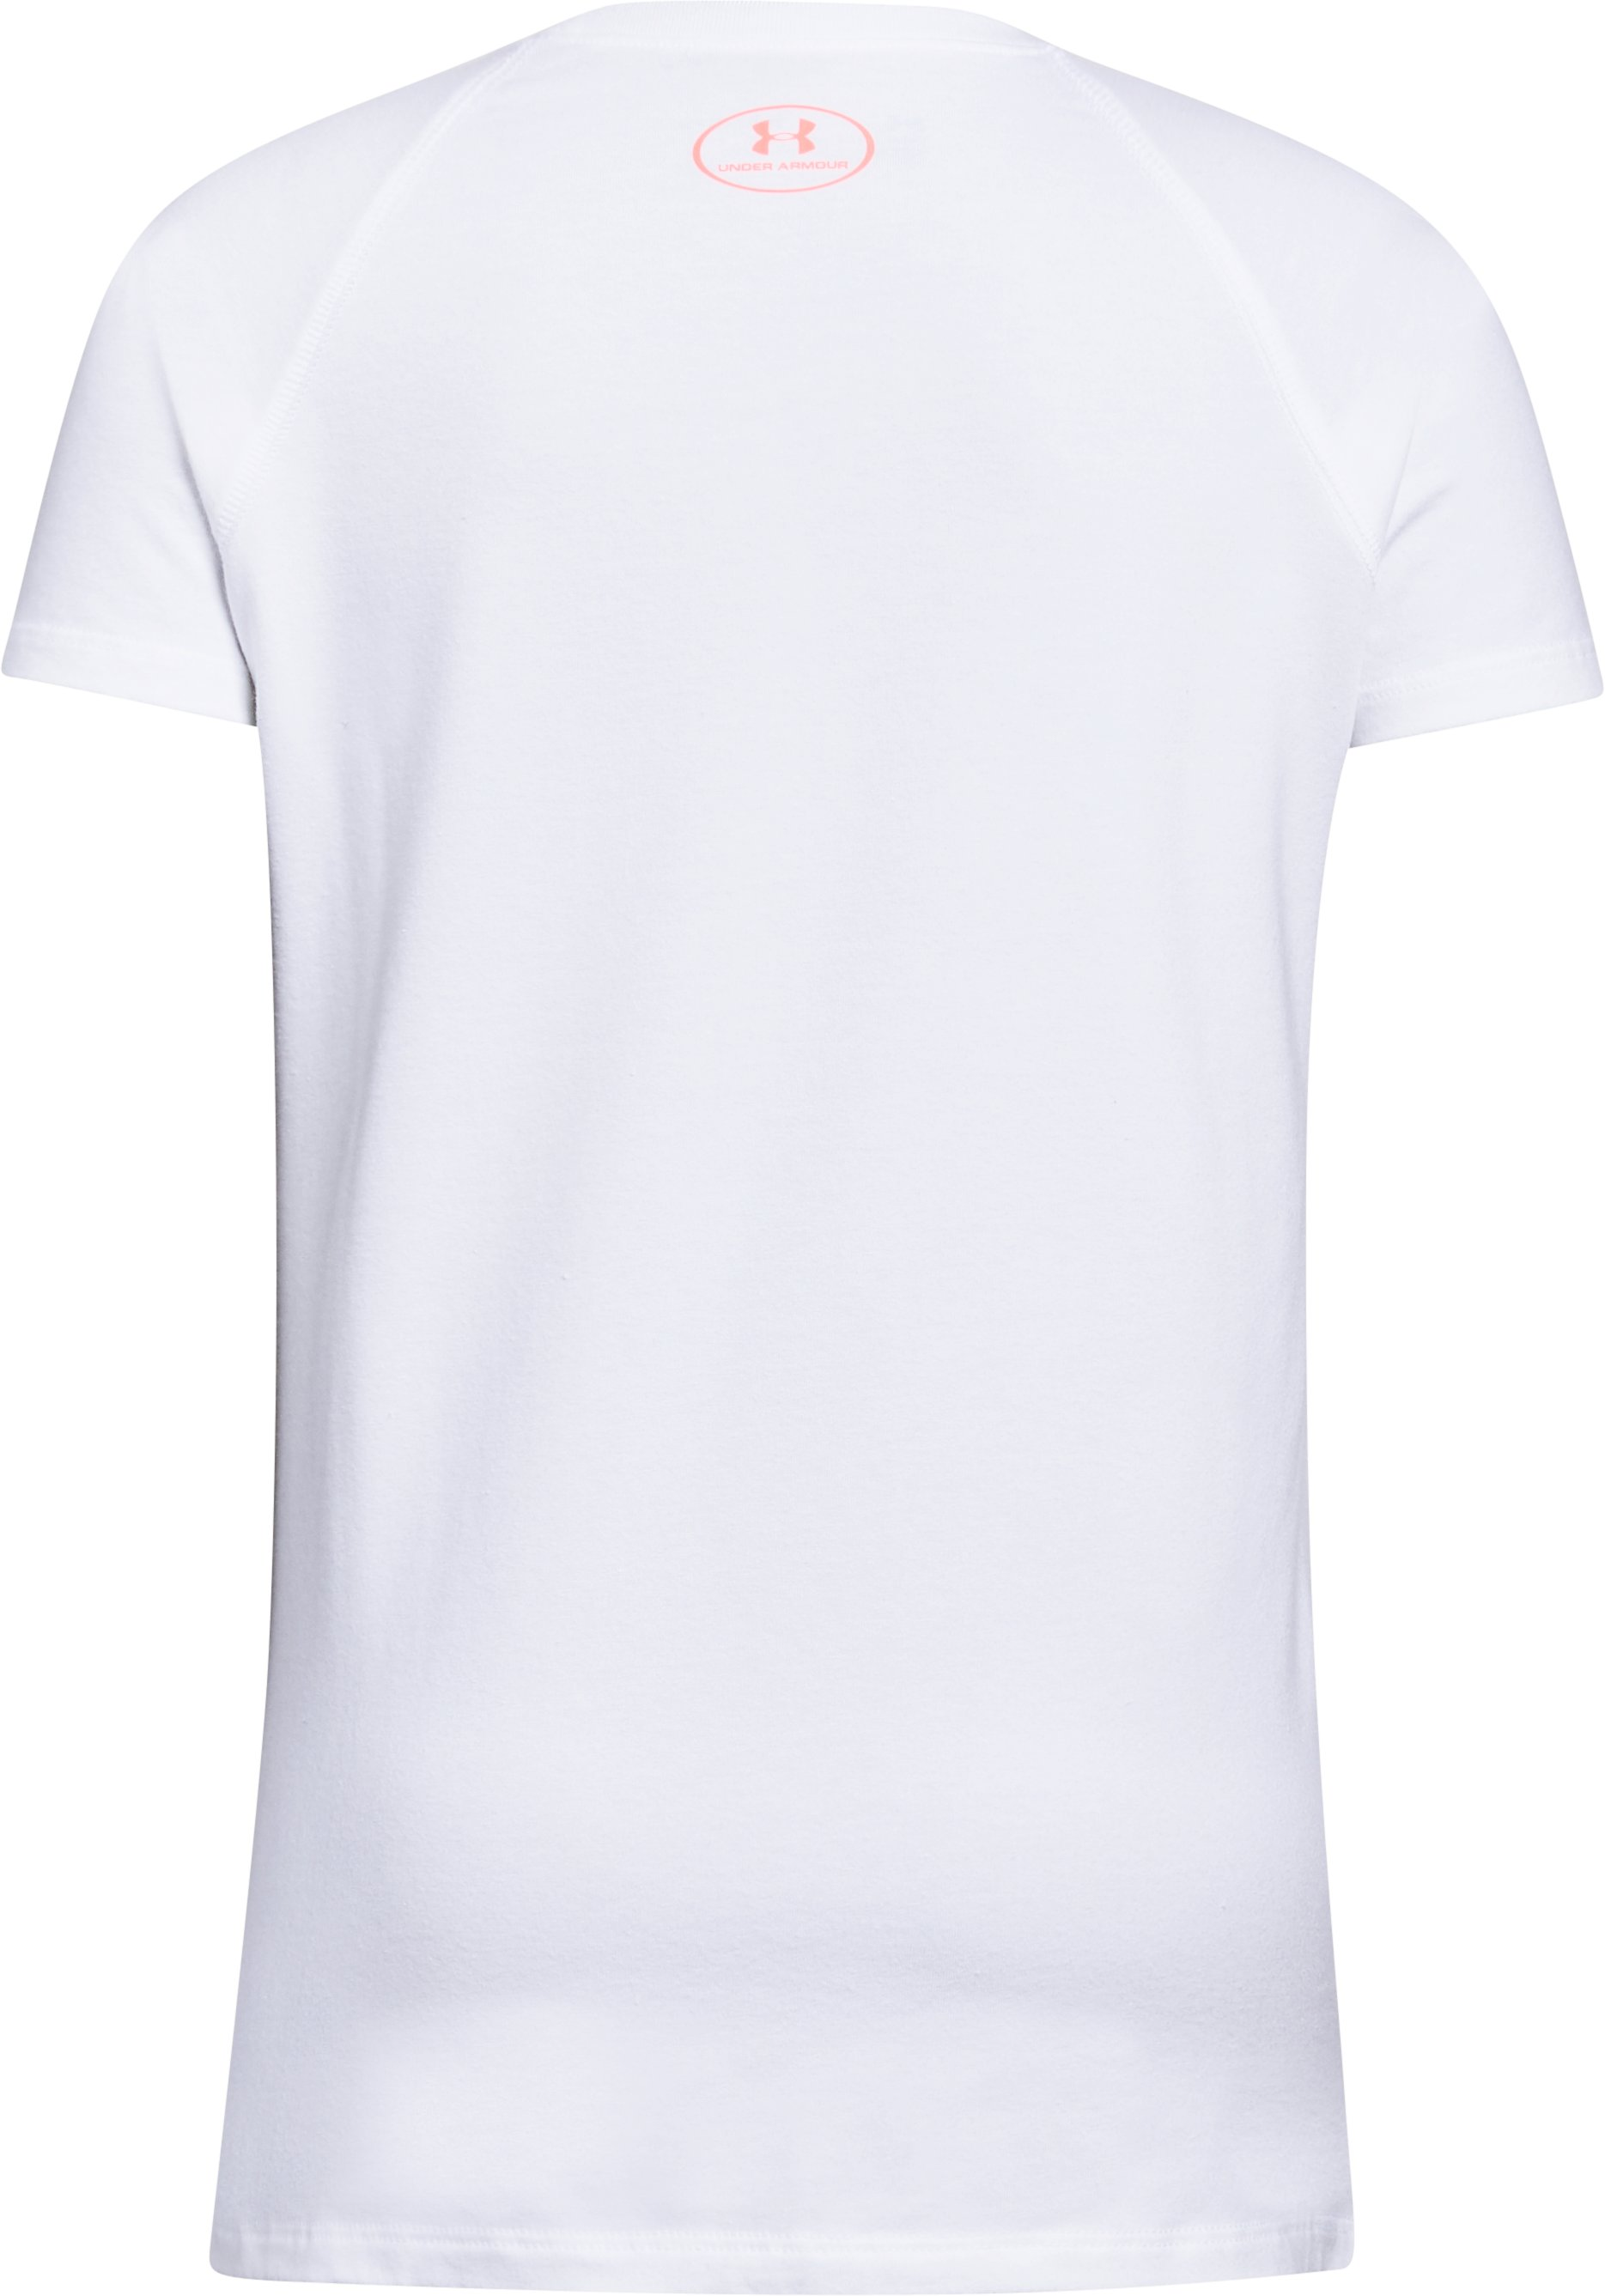 Girls' UA Own Your Style T-Shirt, White,